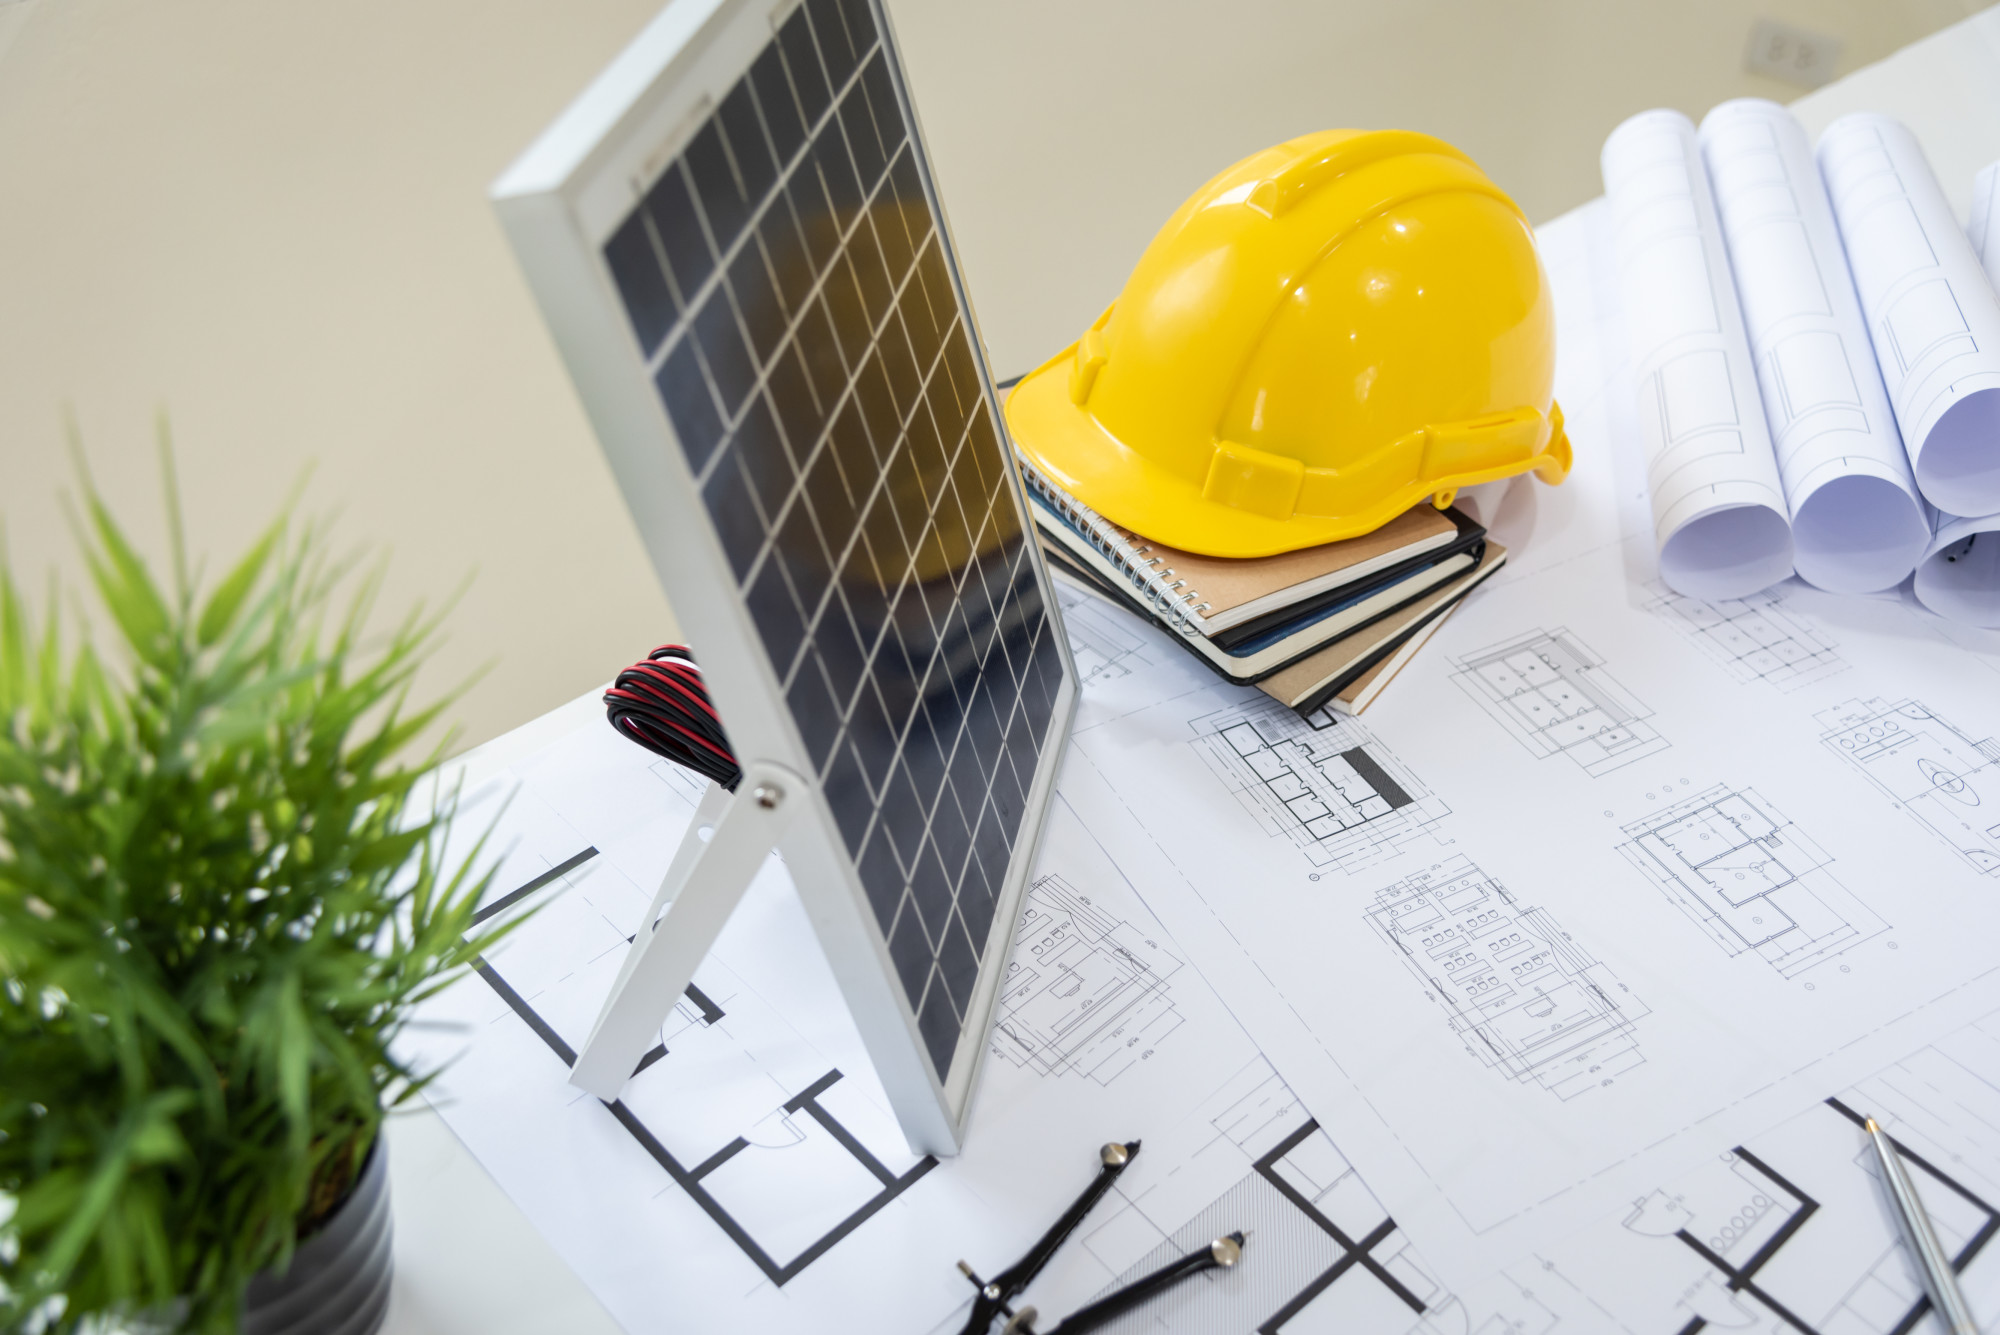 5 Questions to Ask Before Hiring a Solar Contractor